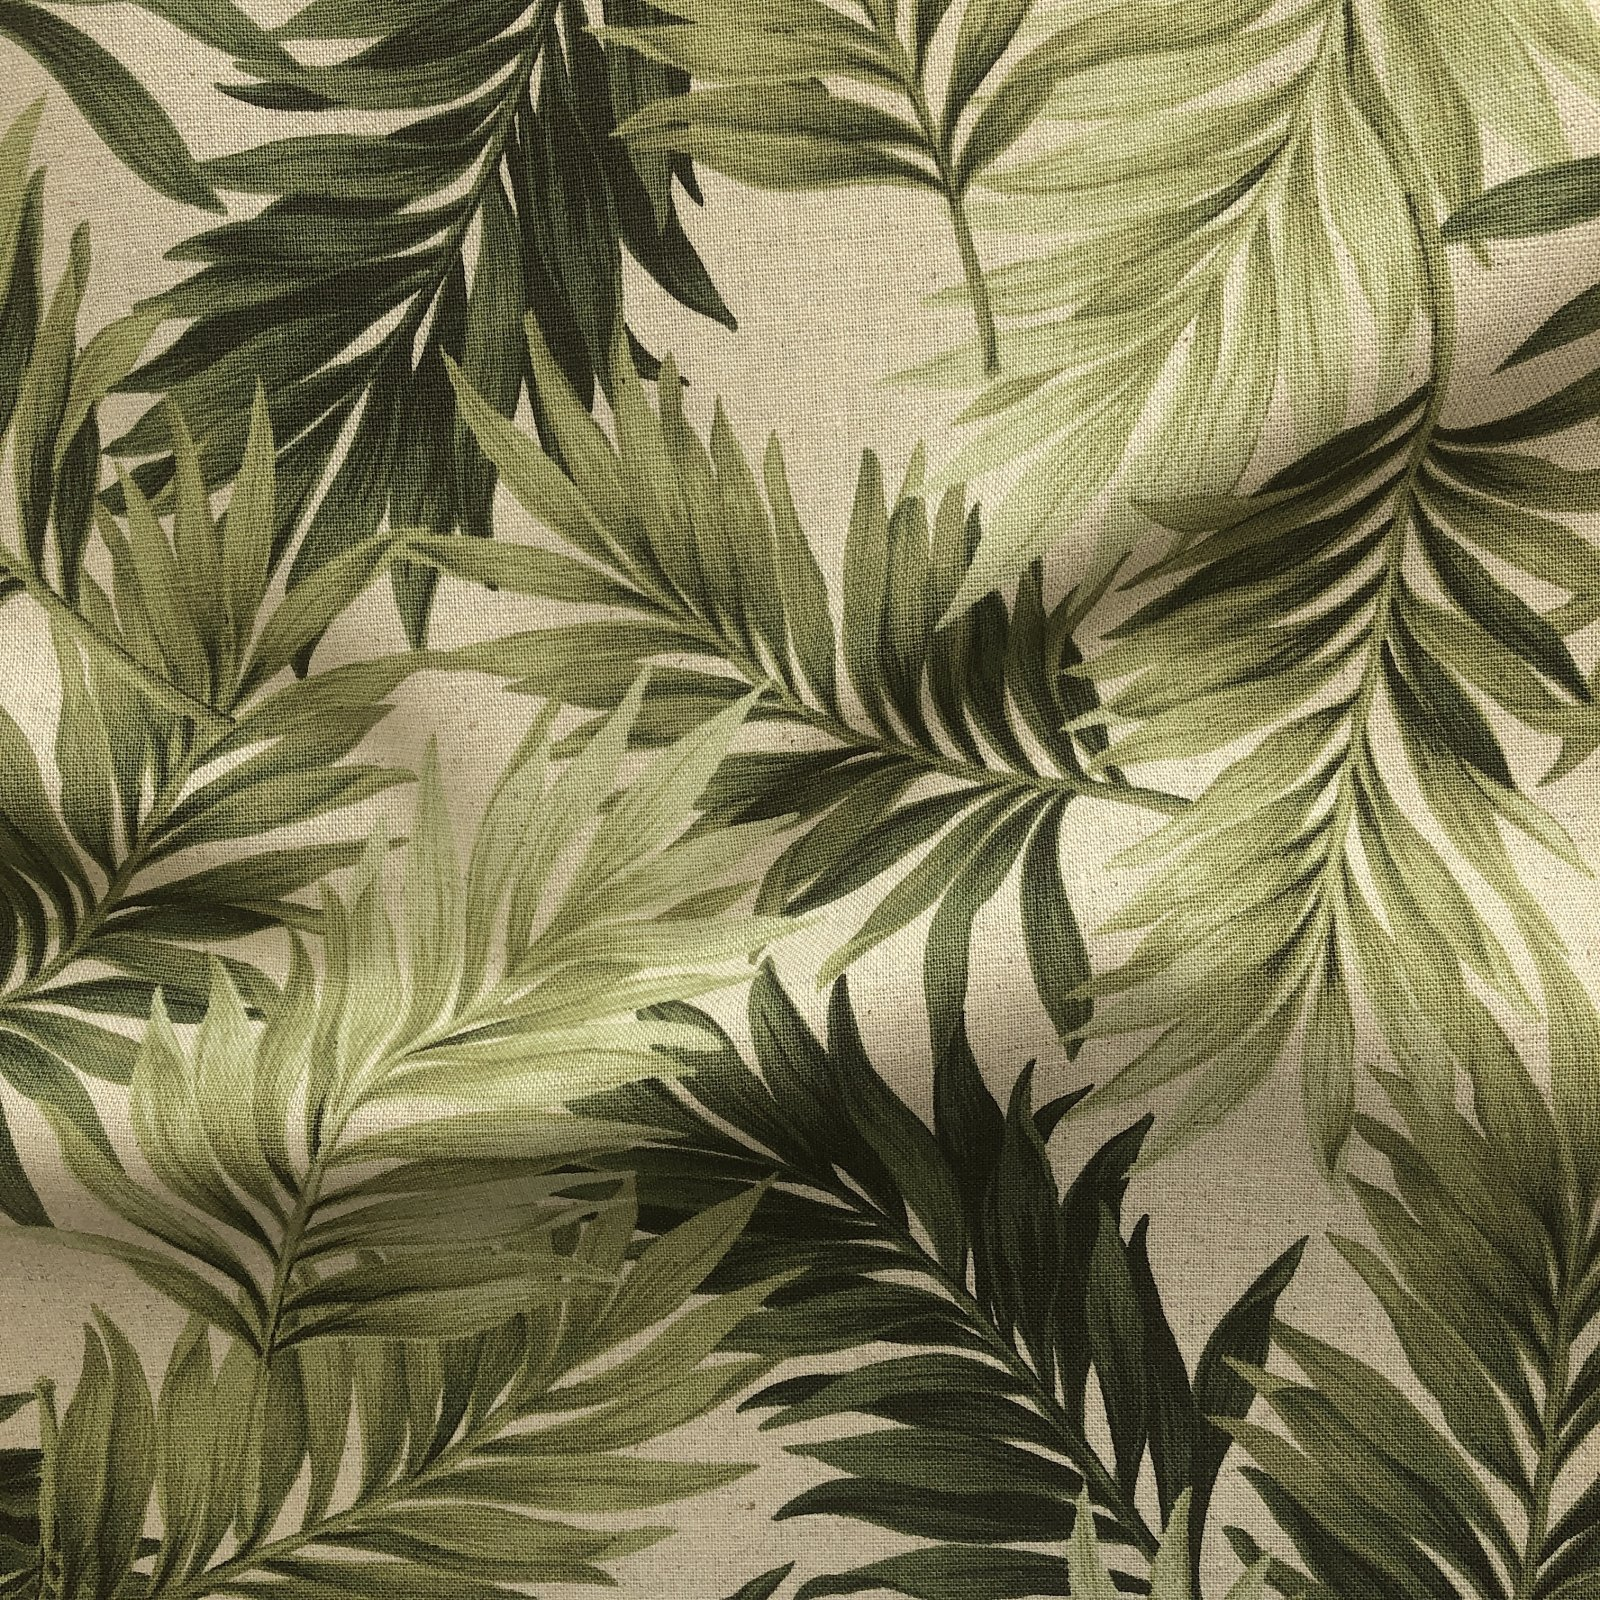 Hishei - Cotton/Linen Canvas - Palm Leaves